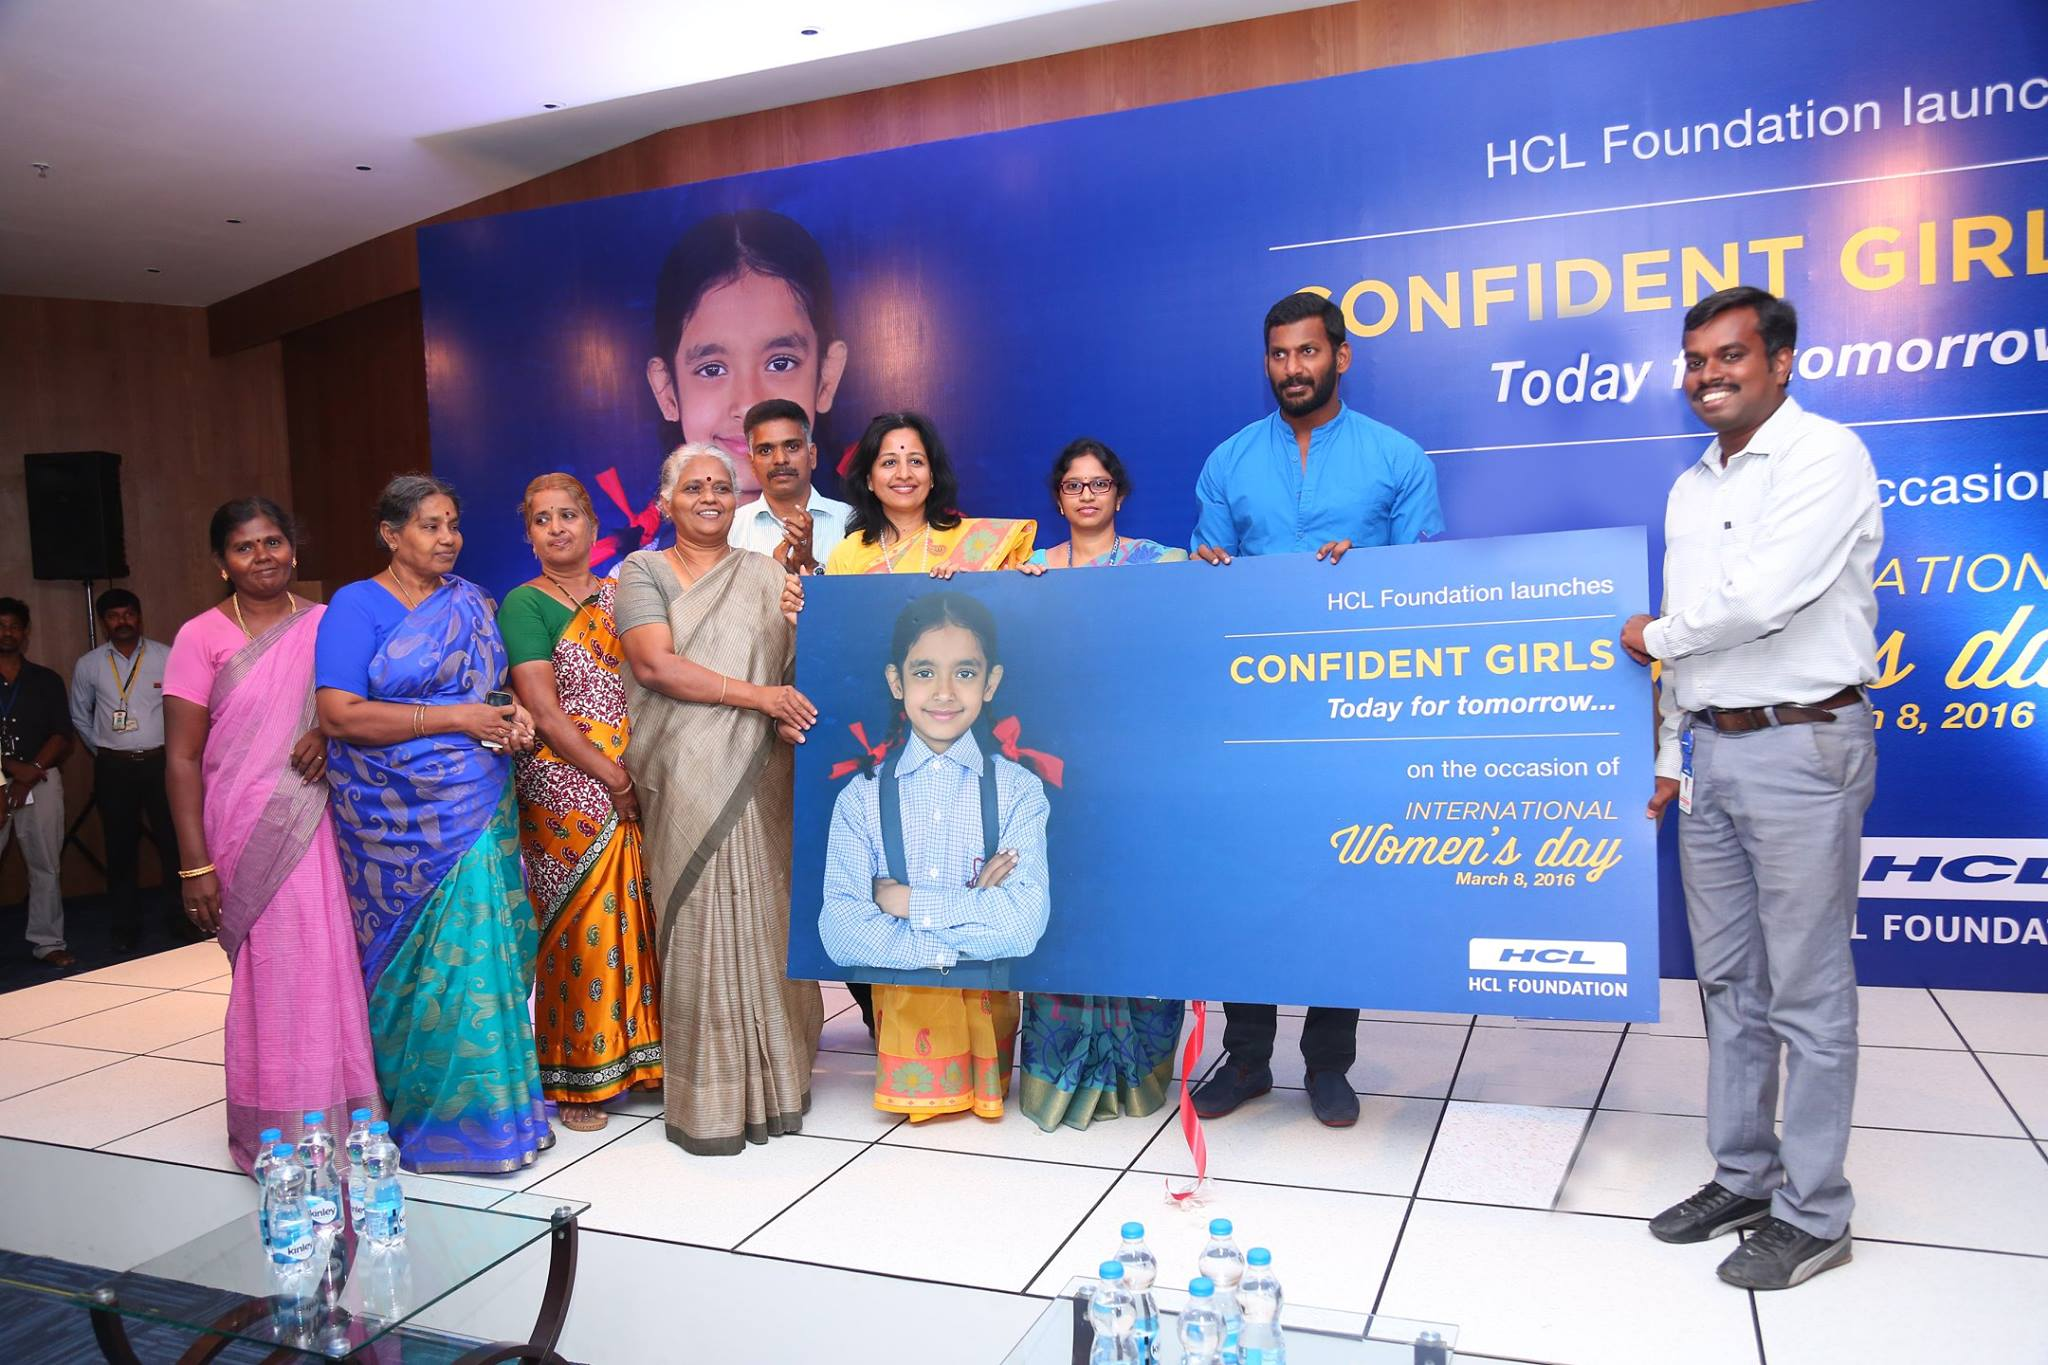 Vishal Launched HCL Confident Girls Today For Tomorrow Regarding Women's Day